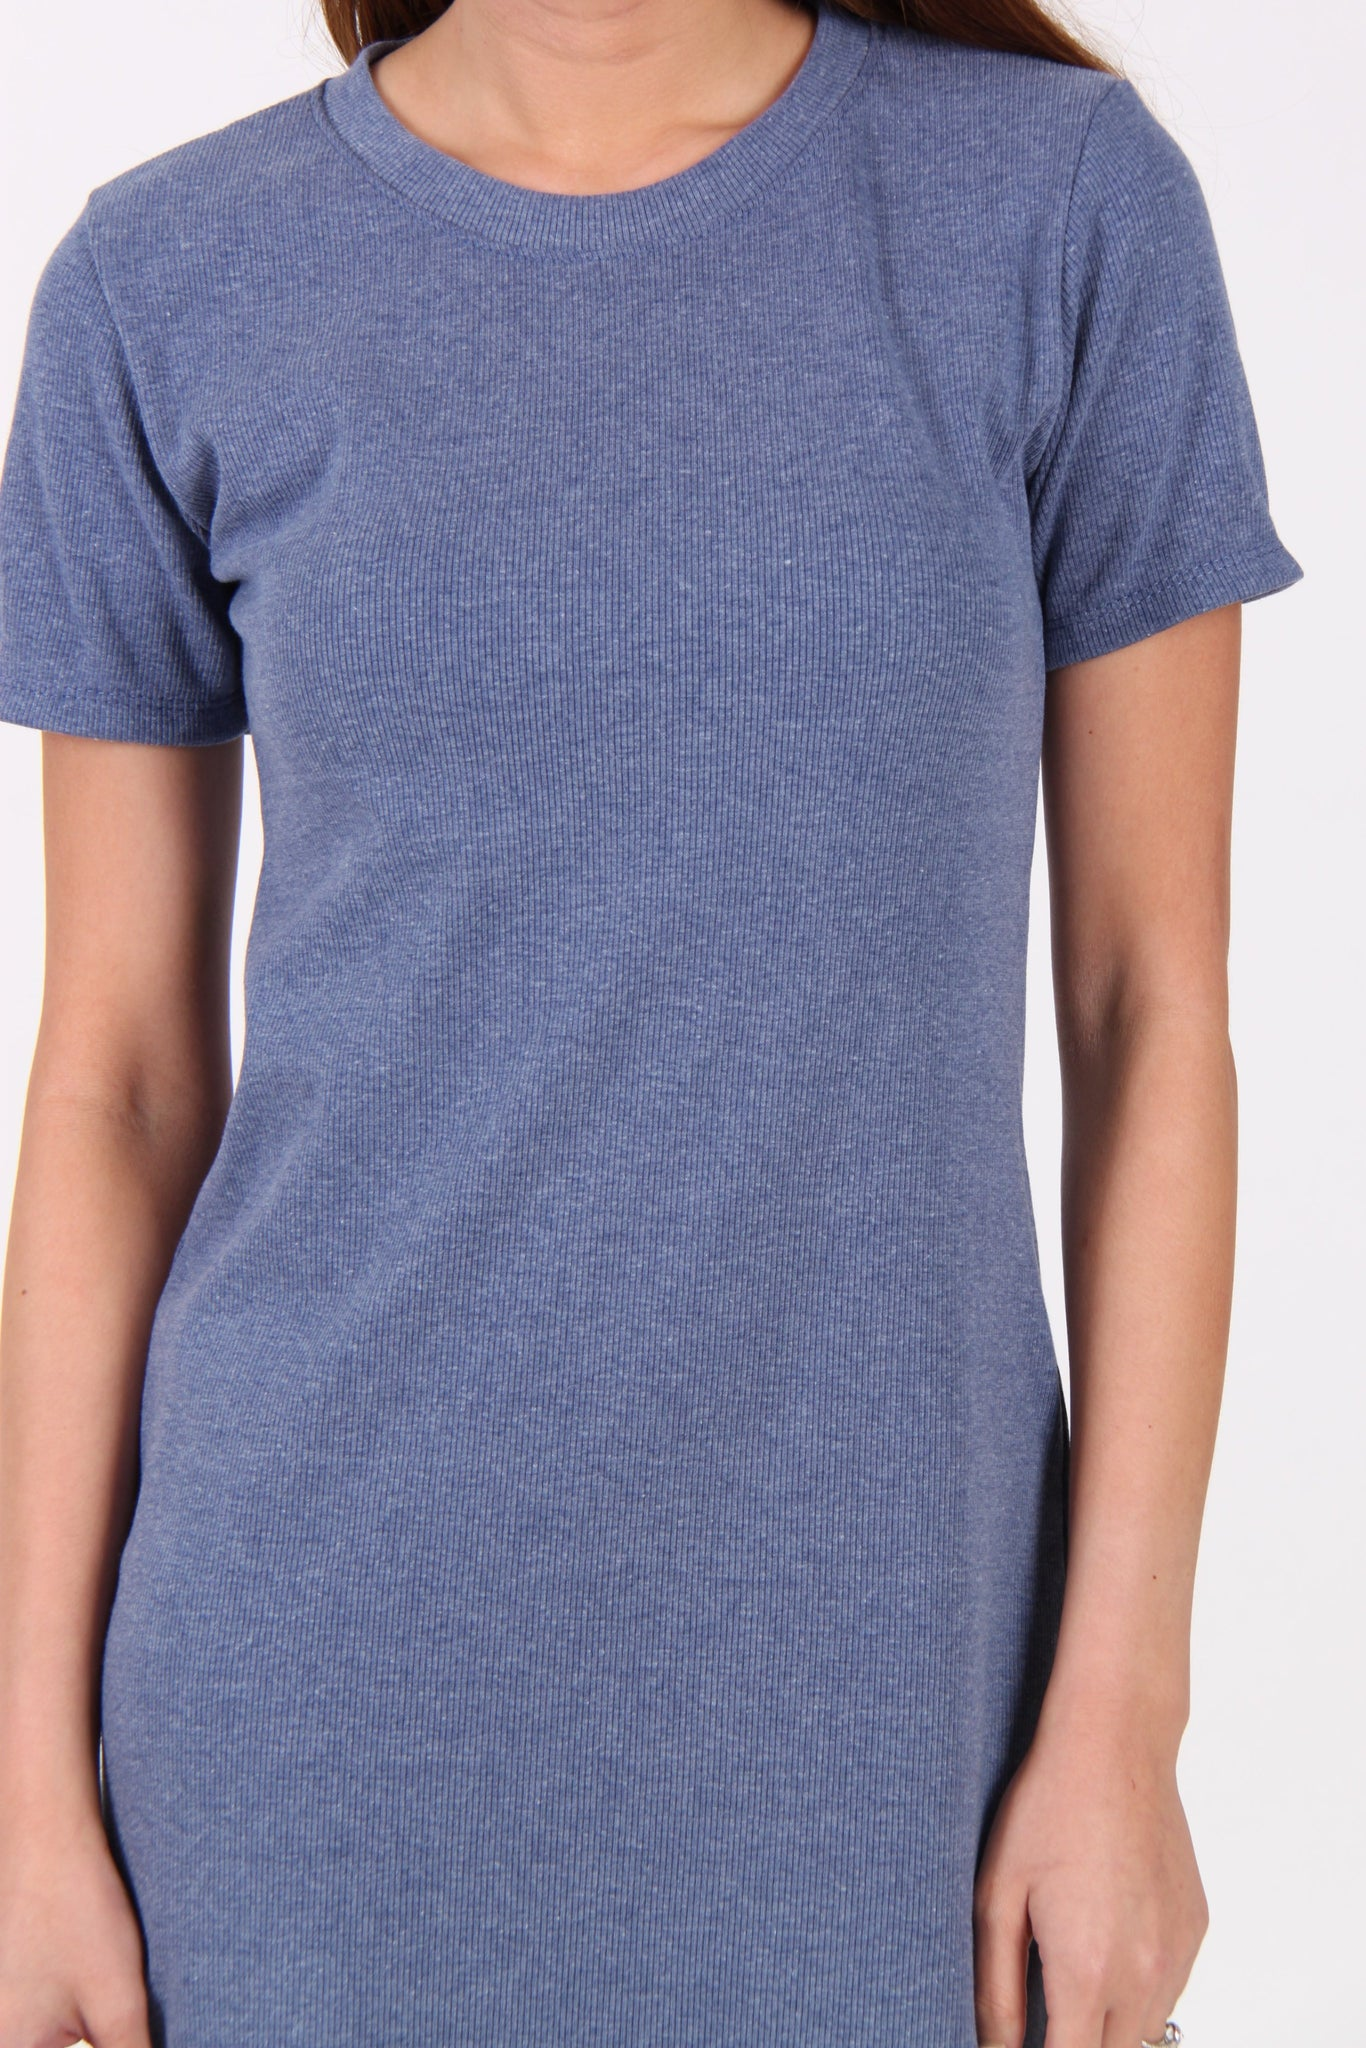 Basic Comfy Tee Dress in Blue